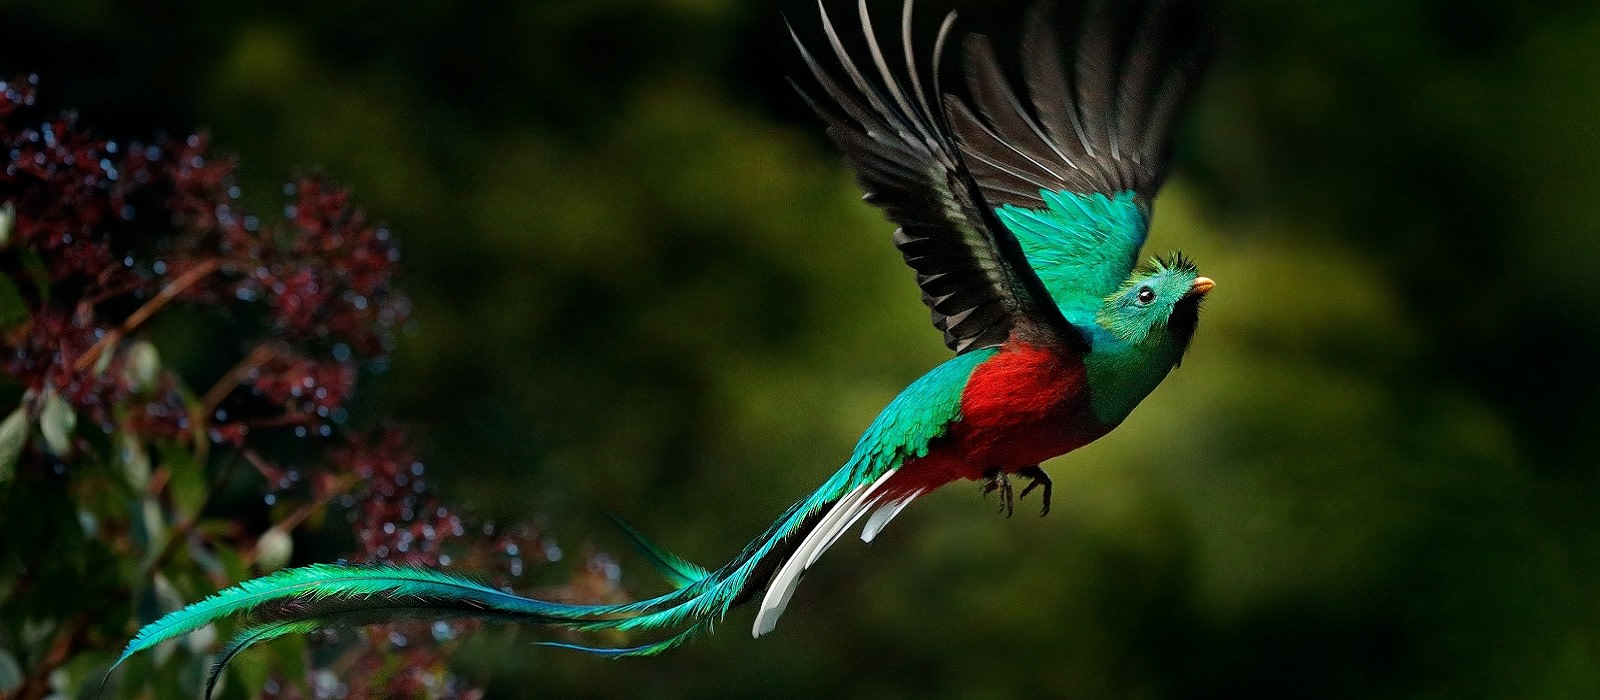 EnchantiFlying Resplendent Quetzal, Pharomachrus mocinno, Savegre in Costa Rica, with green forest in background. Magnificent sacred green and red bird. Action flight moment with Resplendent Quetzal.